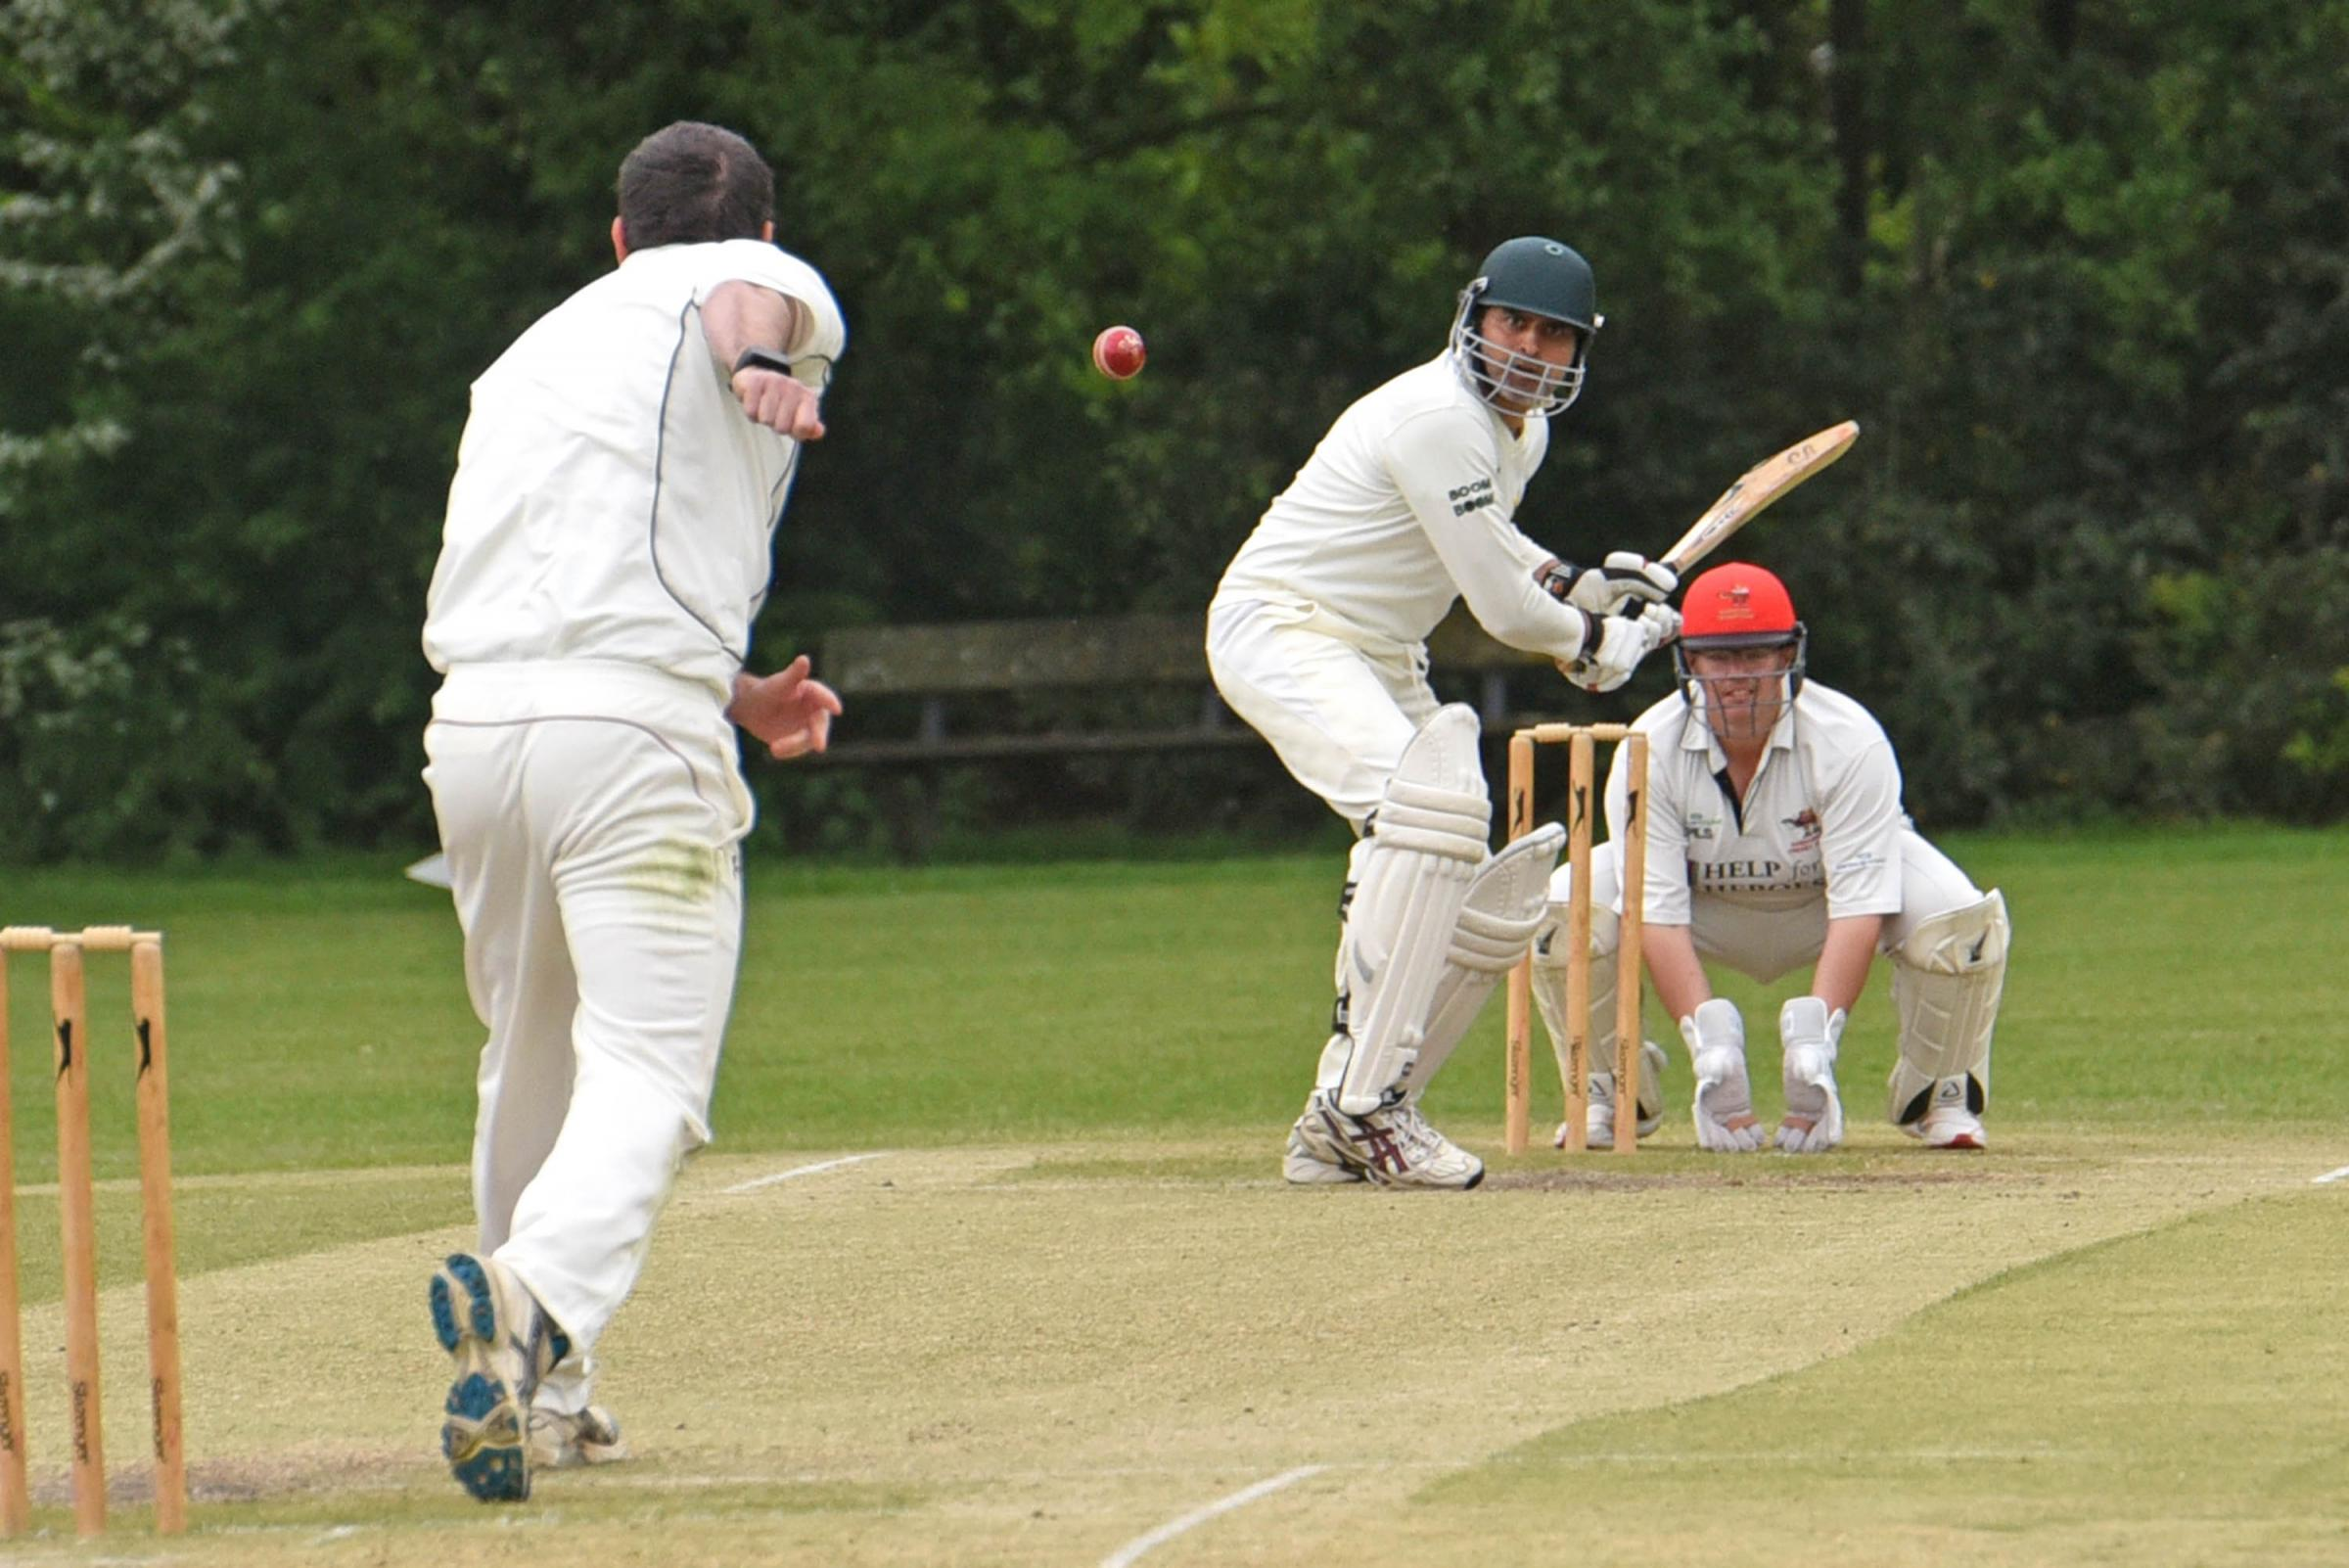 Berkshire County Sports opener Talat Nawaz in action against Sandhurst   Picture by Emma Sheppard    180549